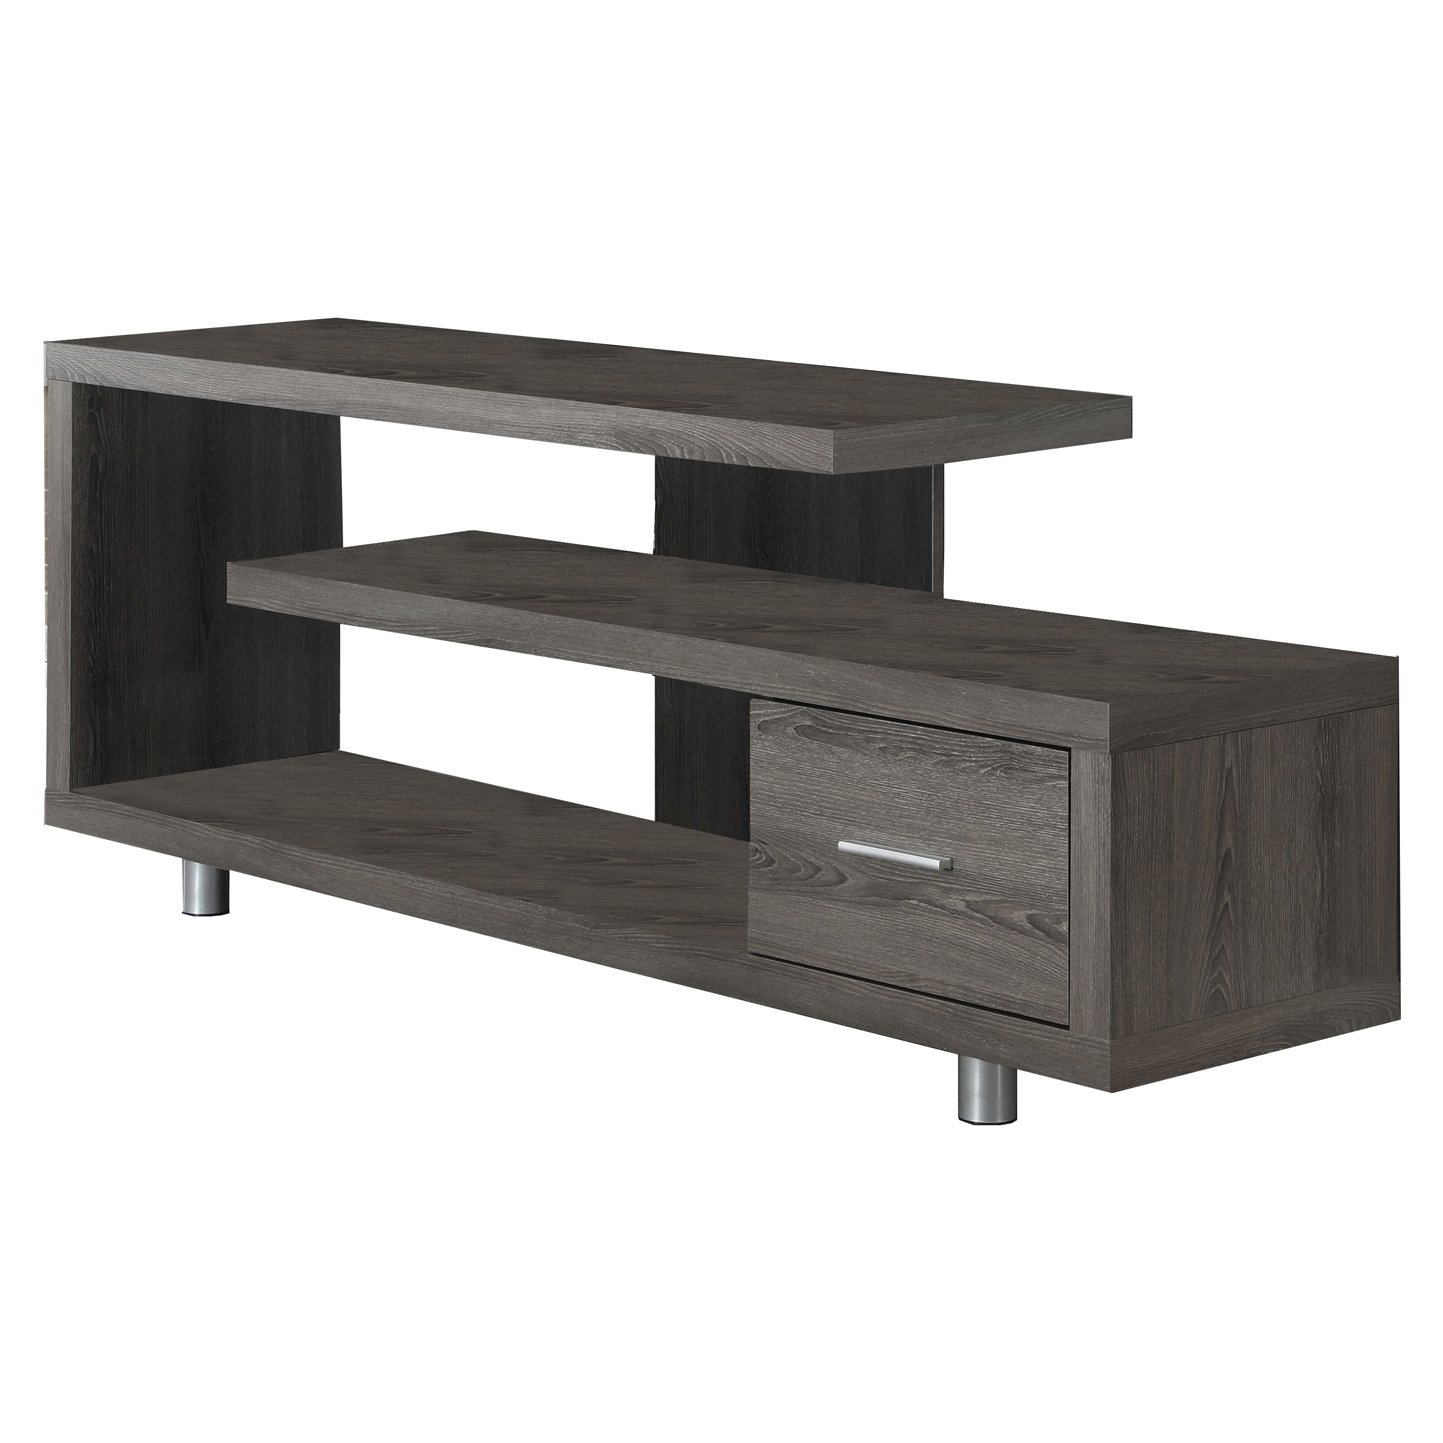 Monarch Specialties I 2574 Dark Taupe with 1 Drawer TV Stand, 60''